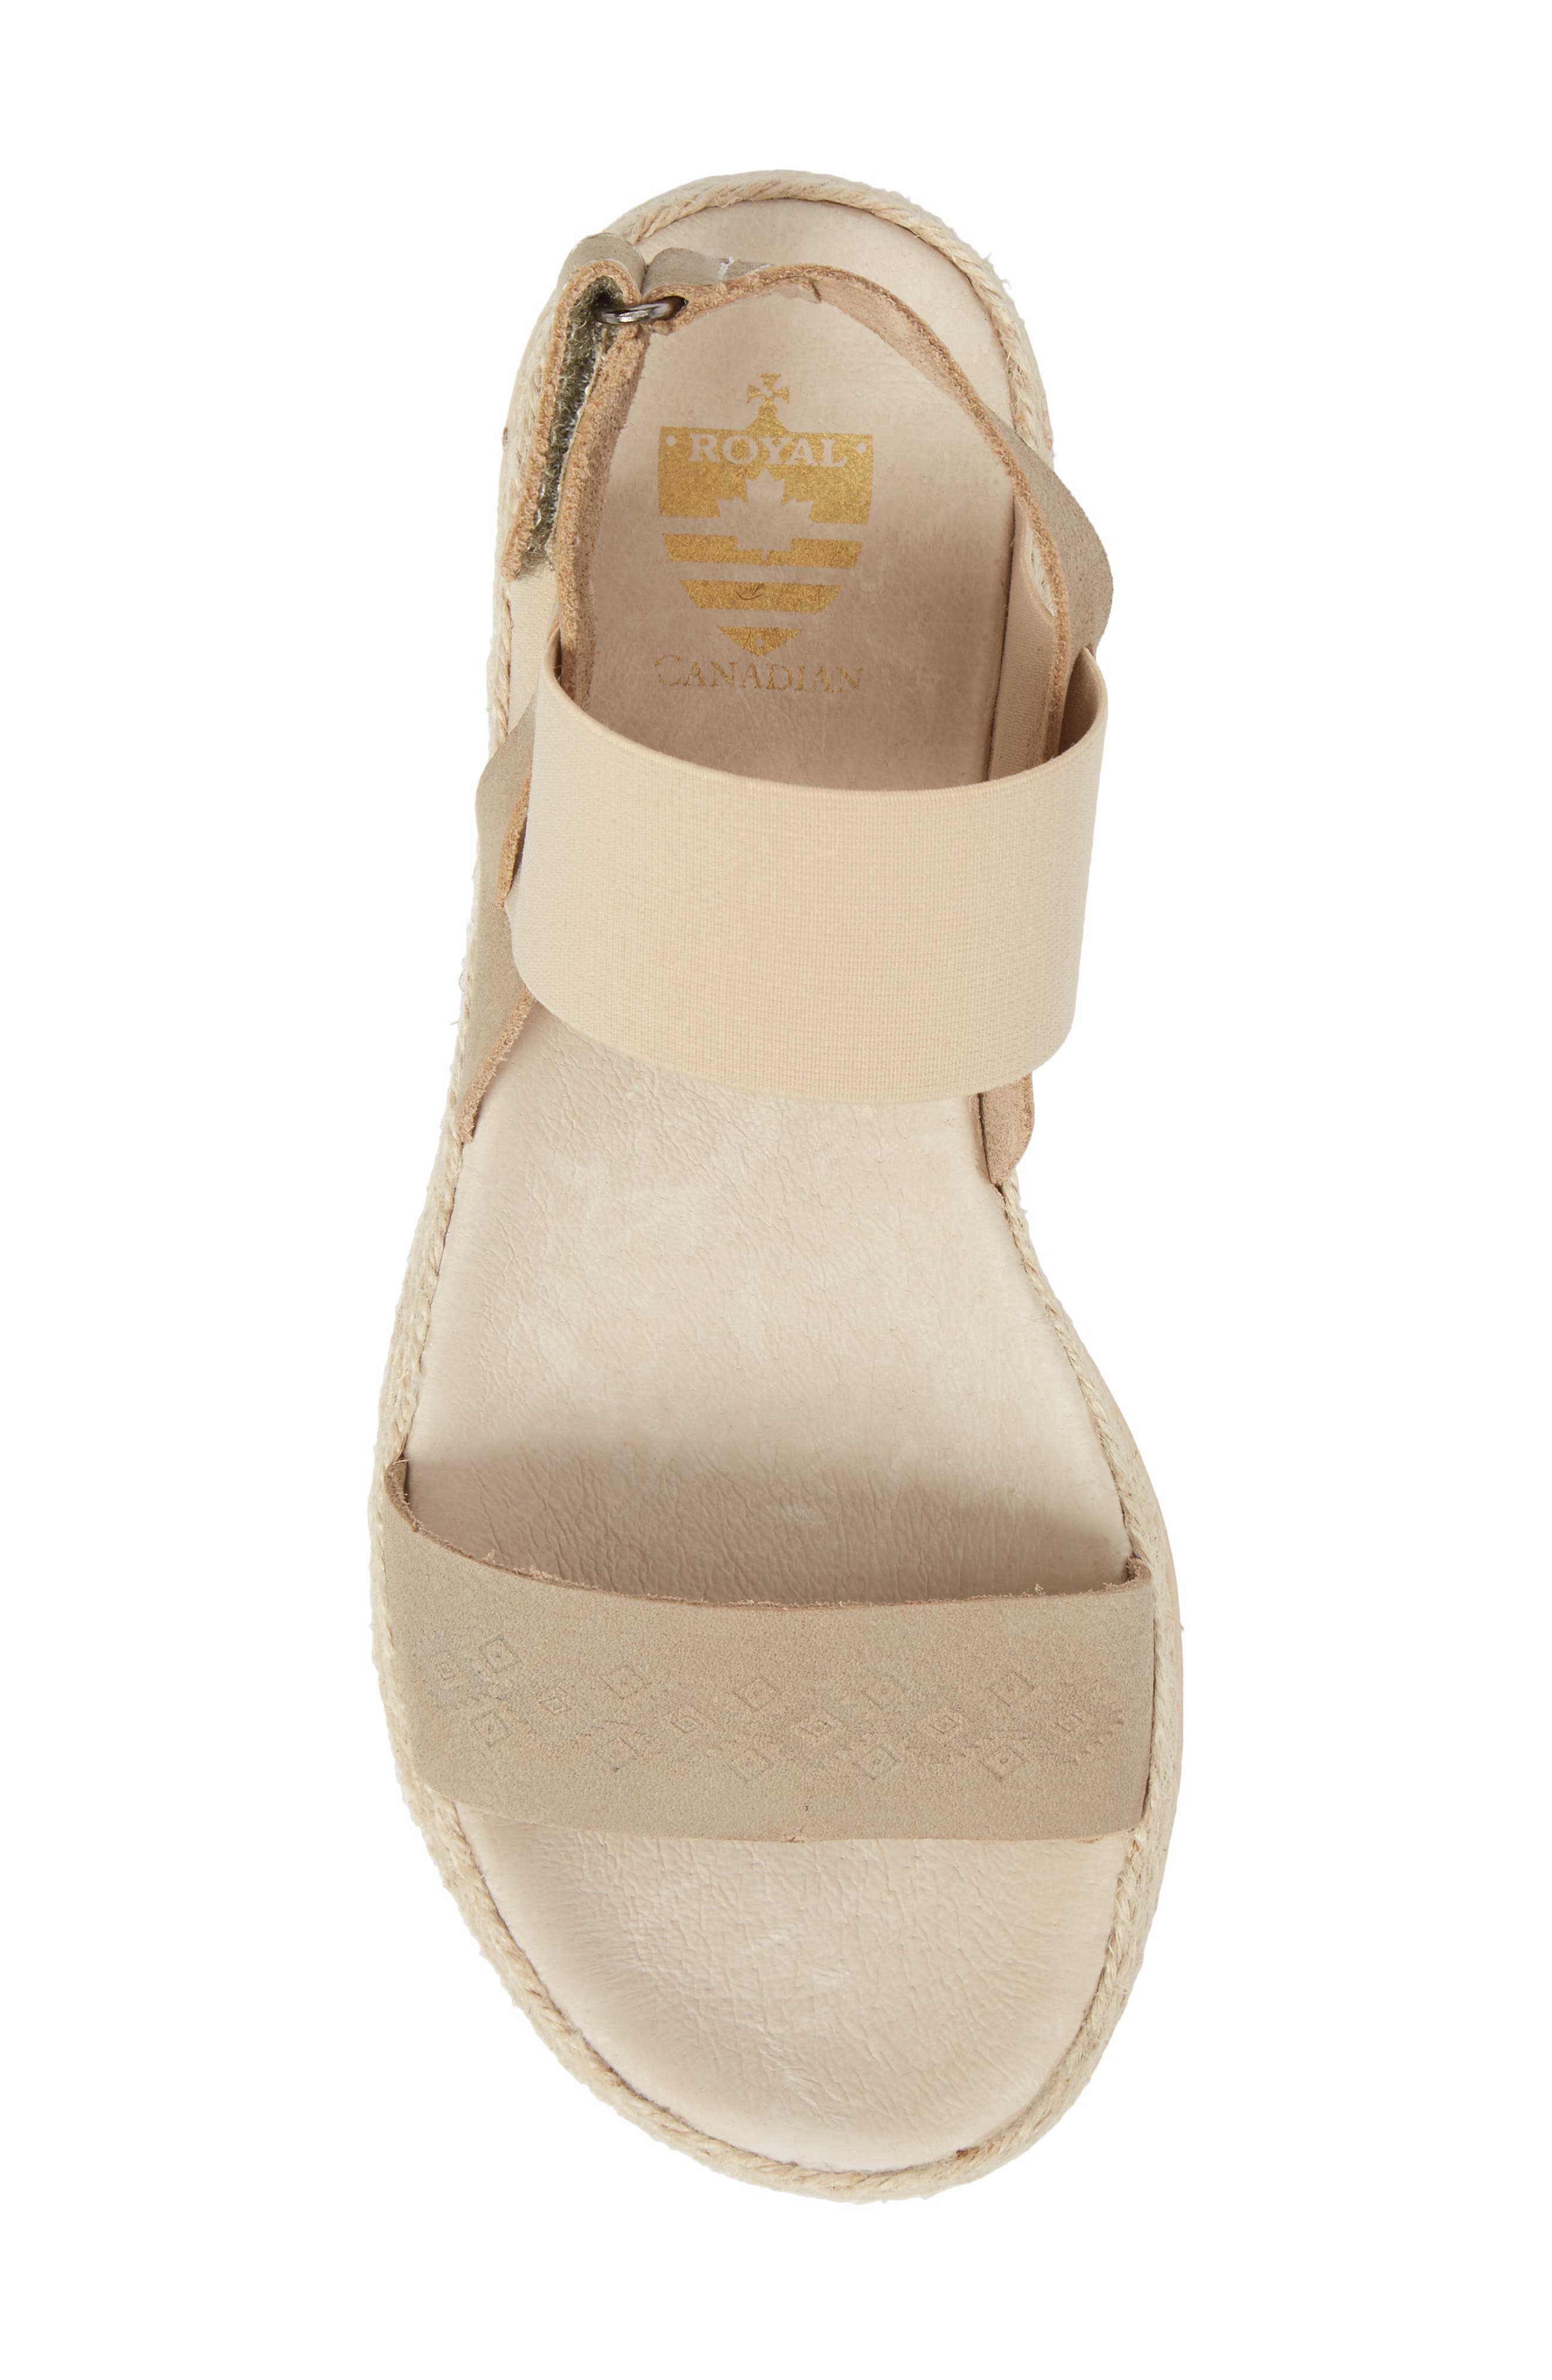 Tobermory Sandal,                             Alternate thumbnail 5, color,                             Taupe Leather